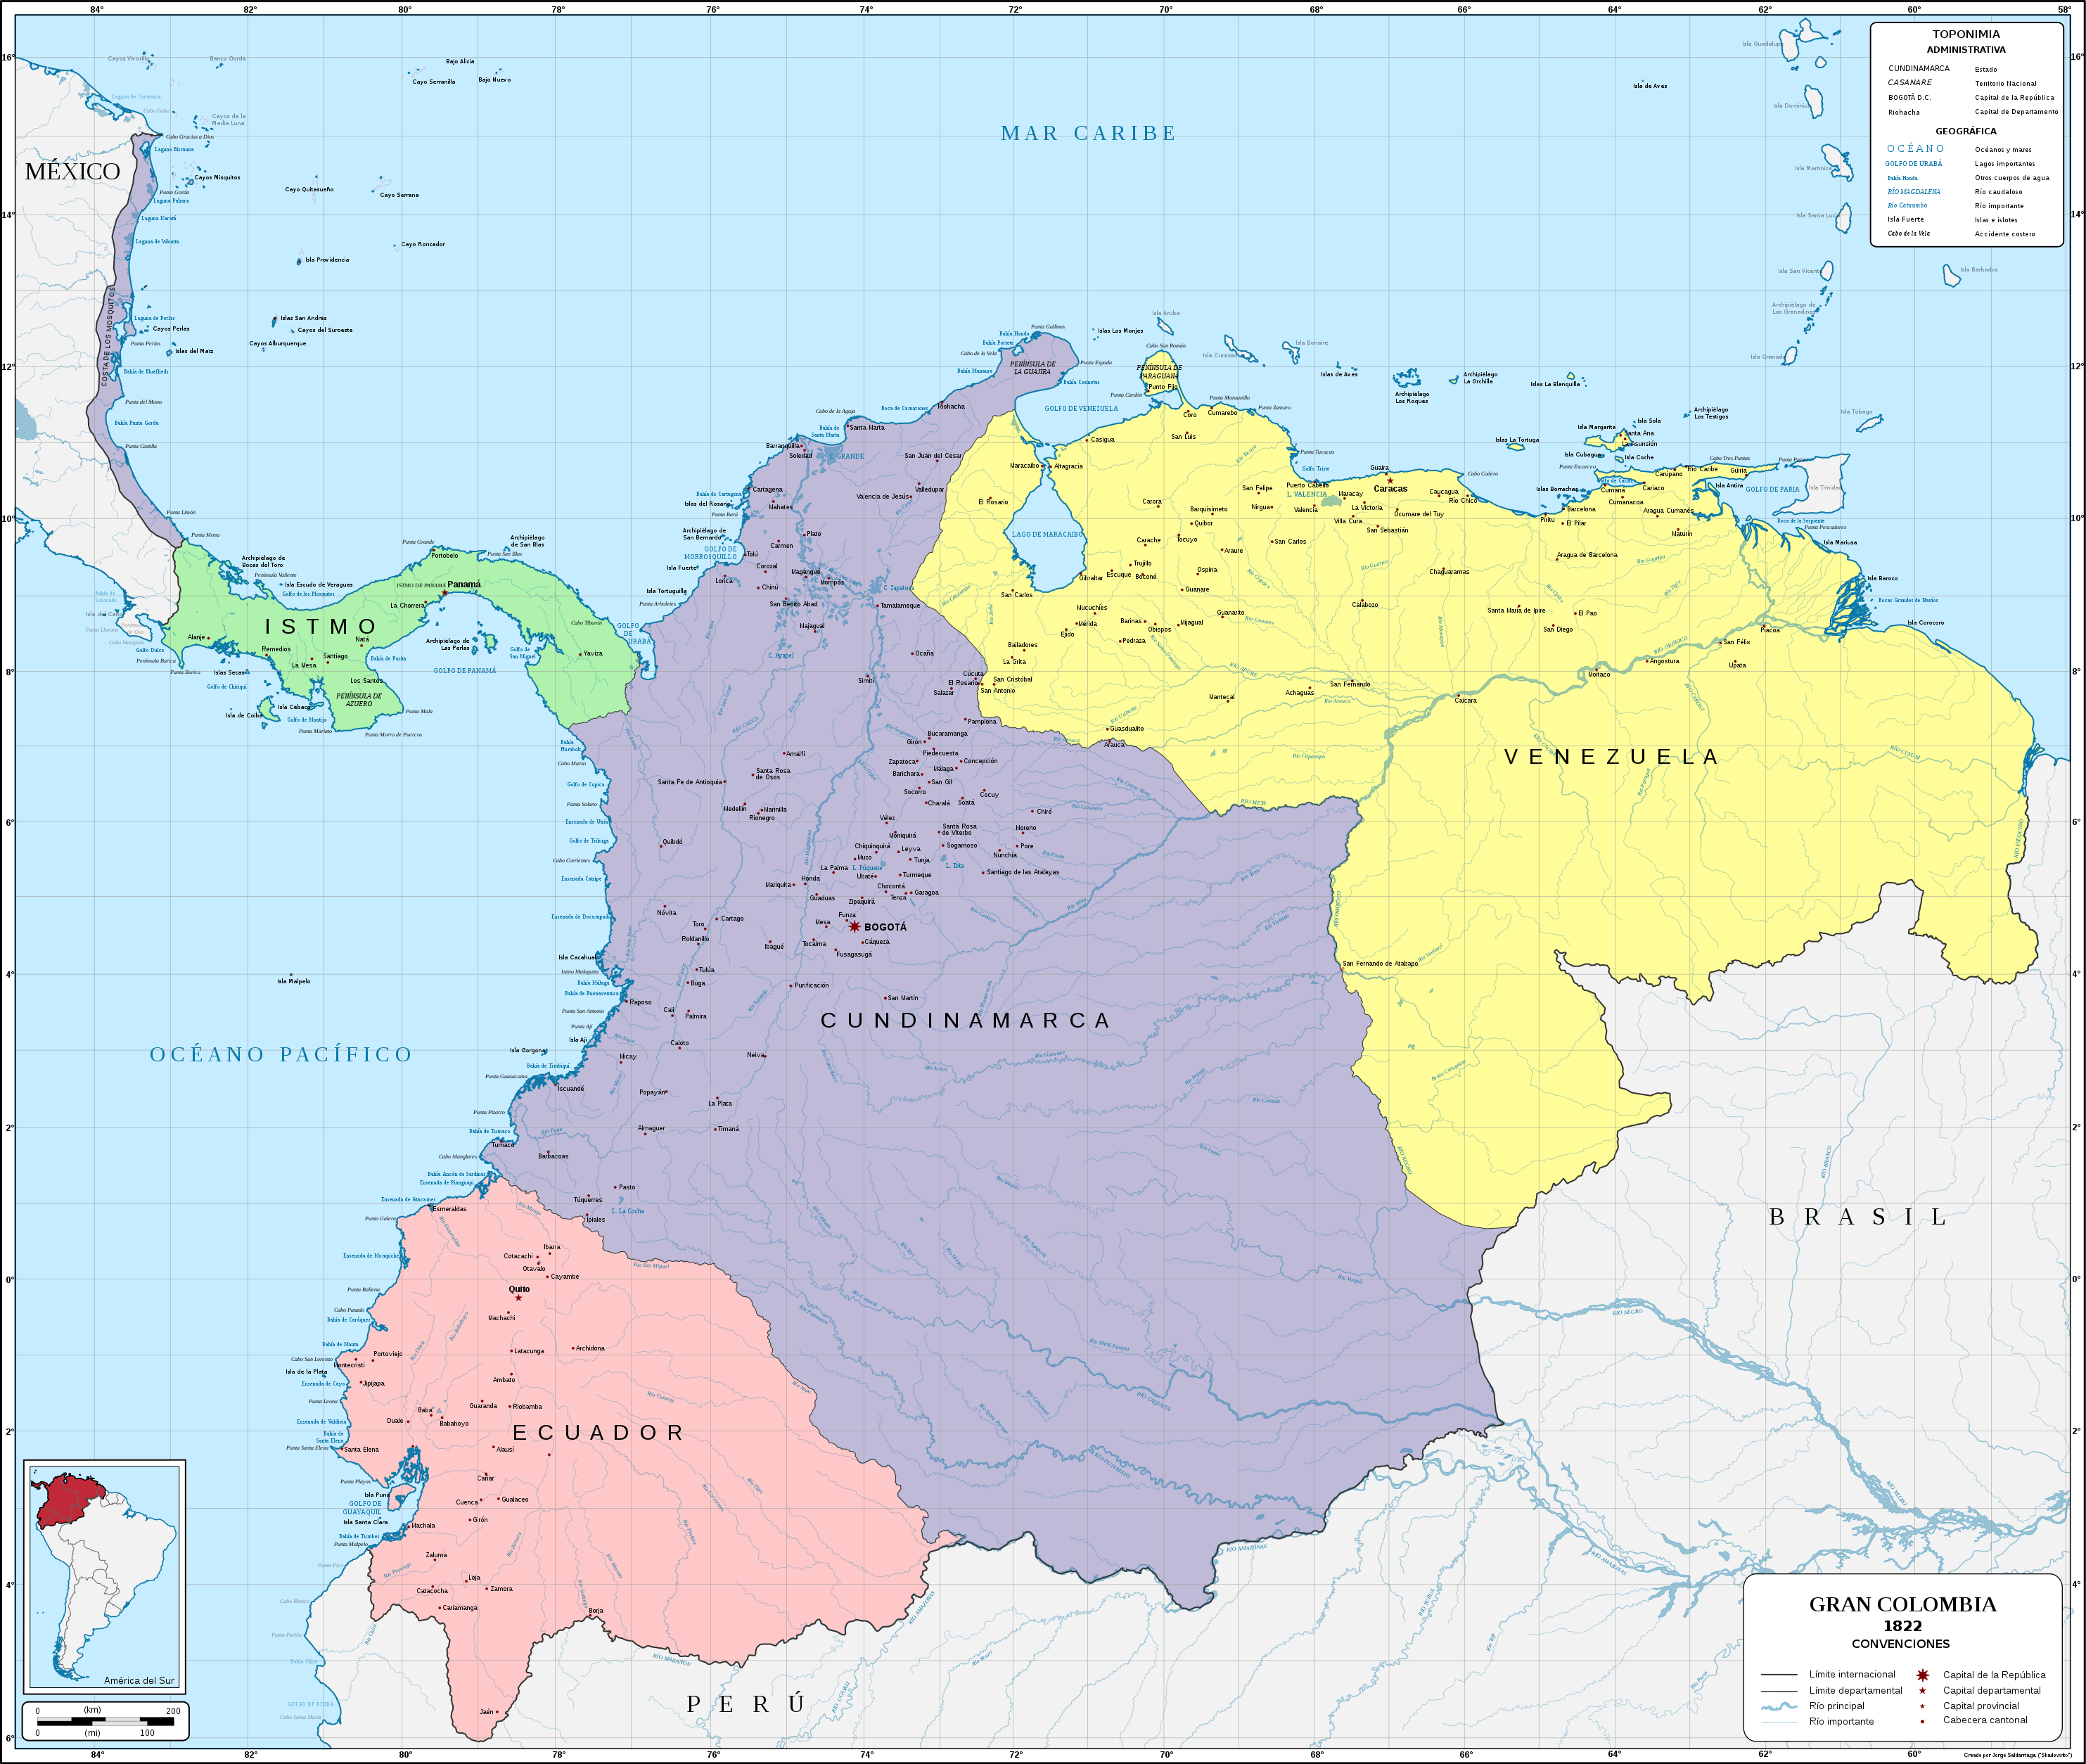 gran colombia in 1822